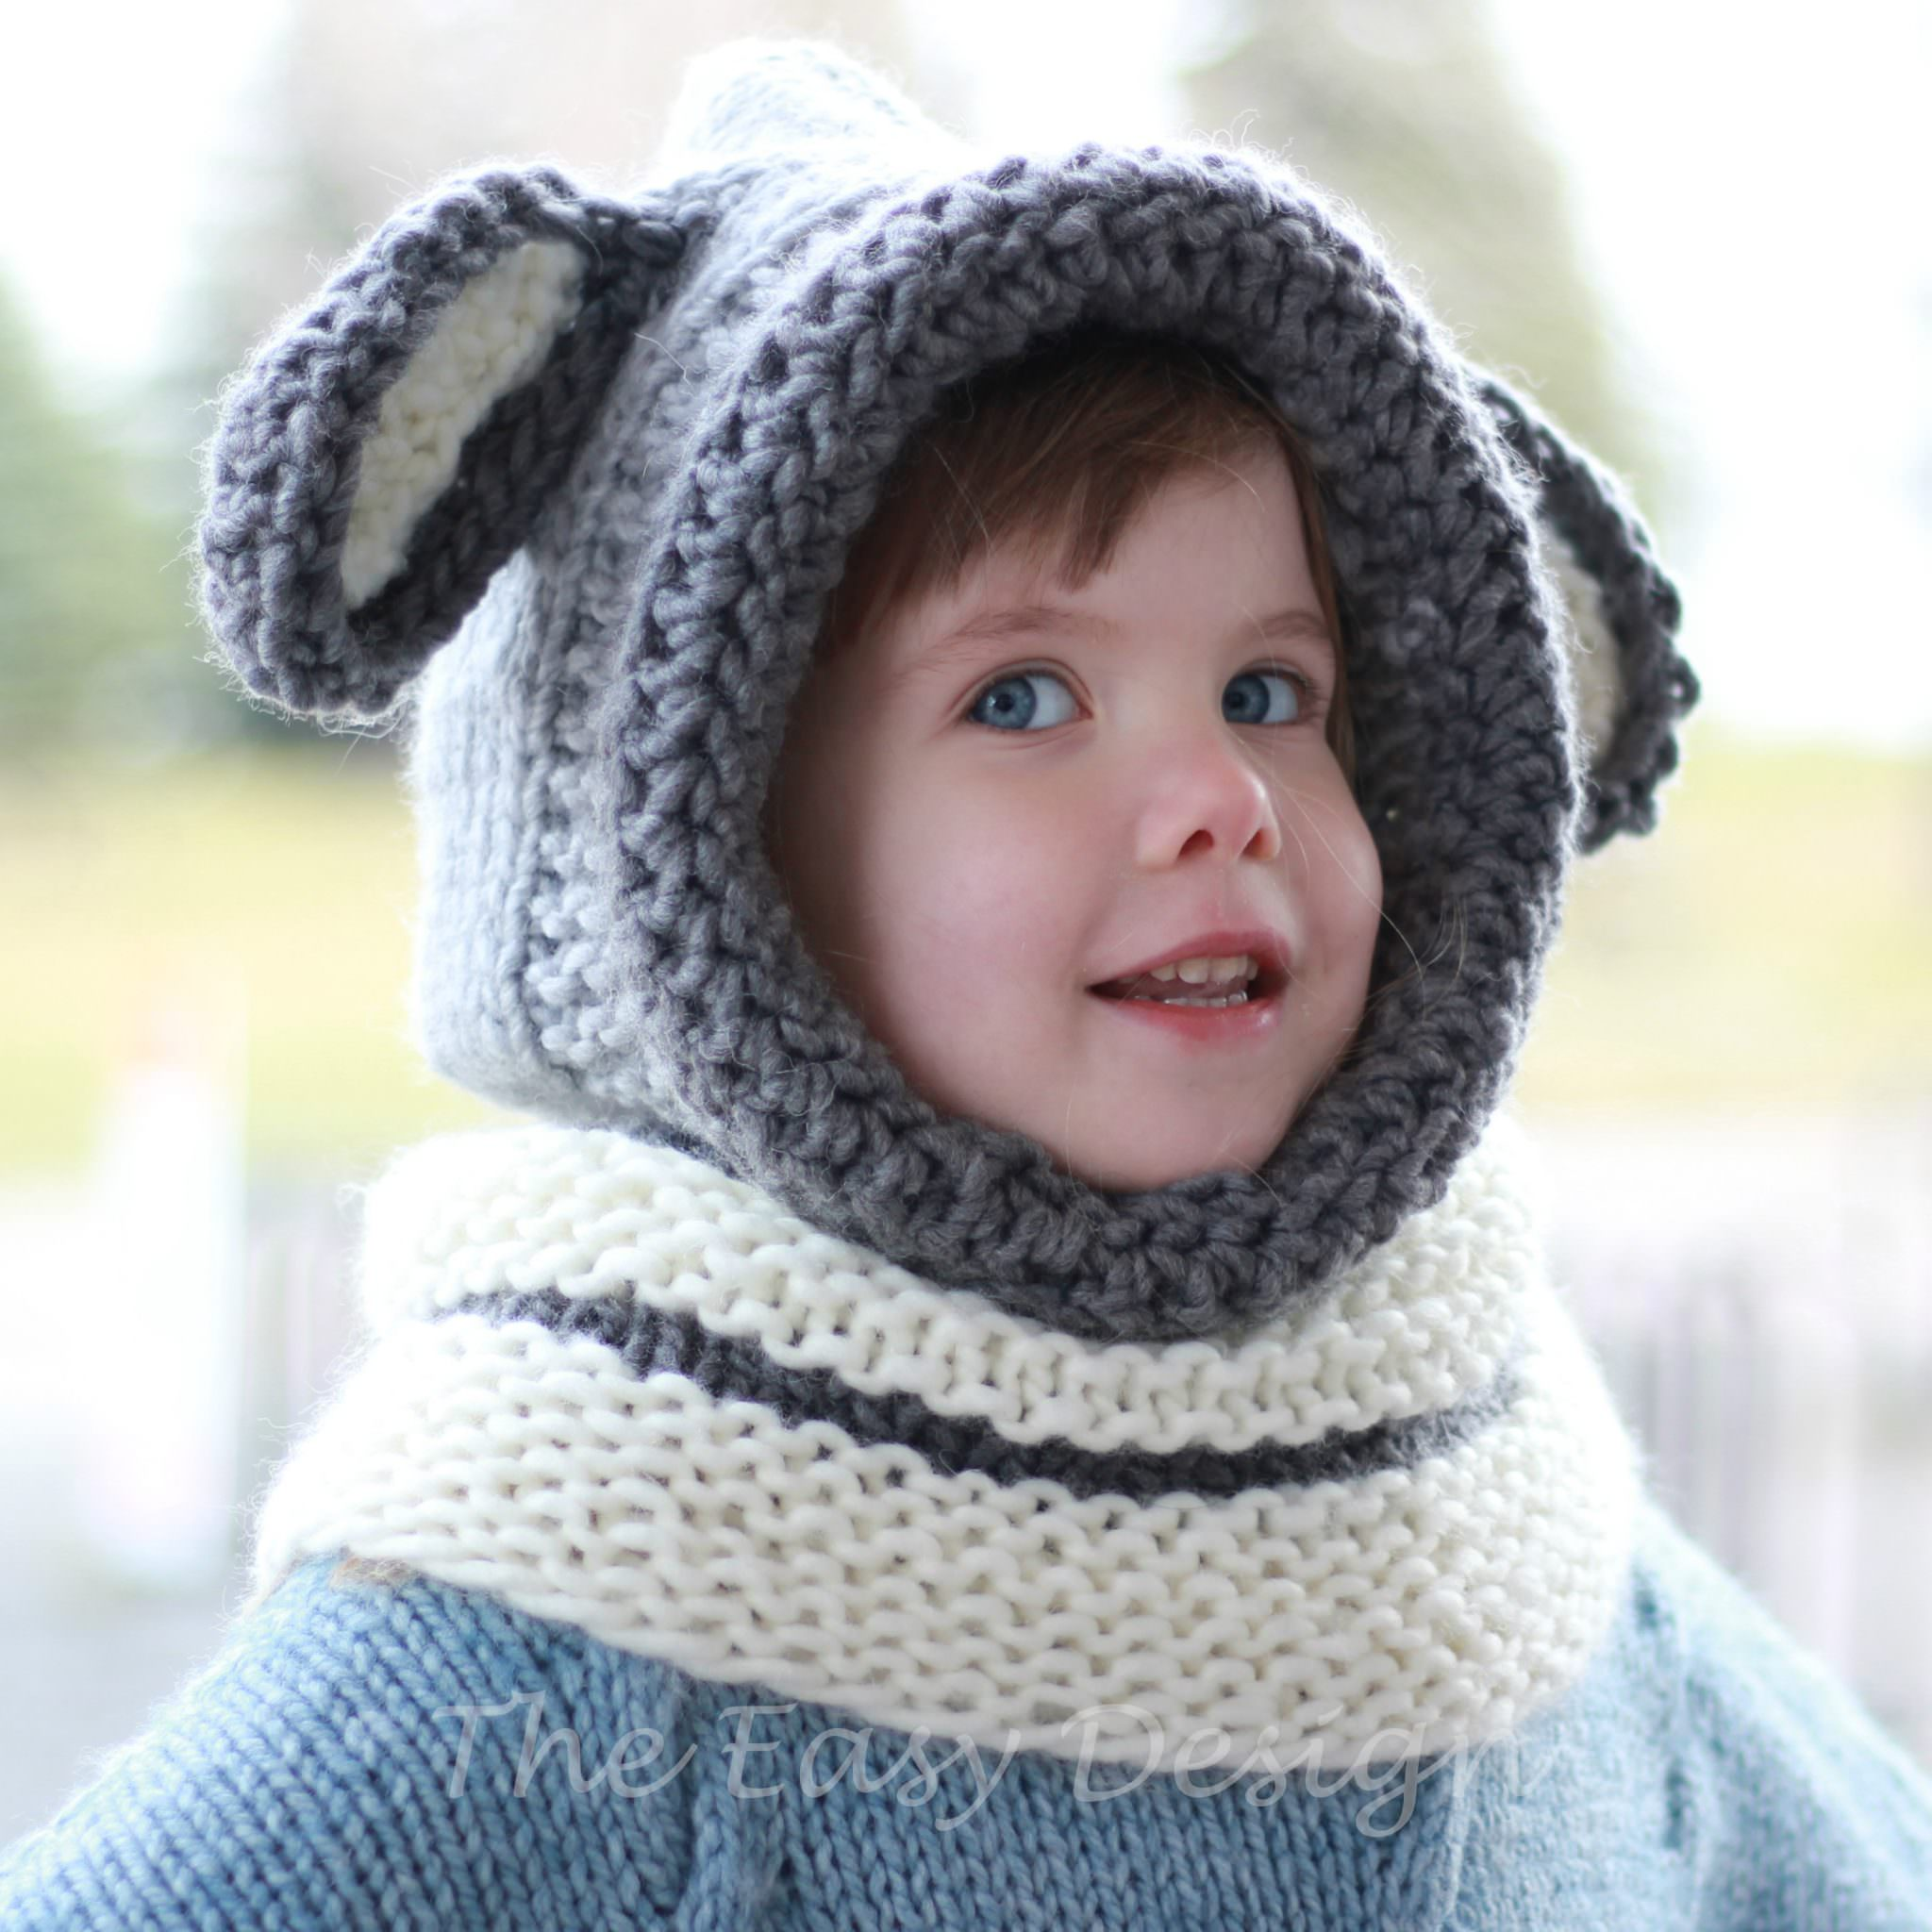 David Dog / Hooded Cowl - Knitting pattern - The Easy Design